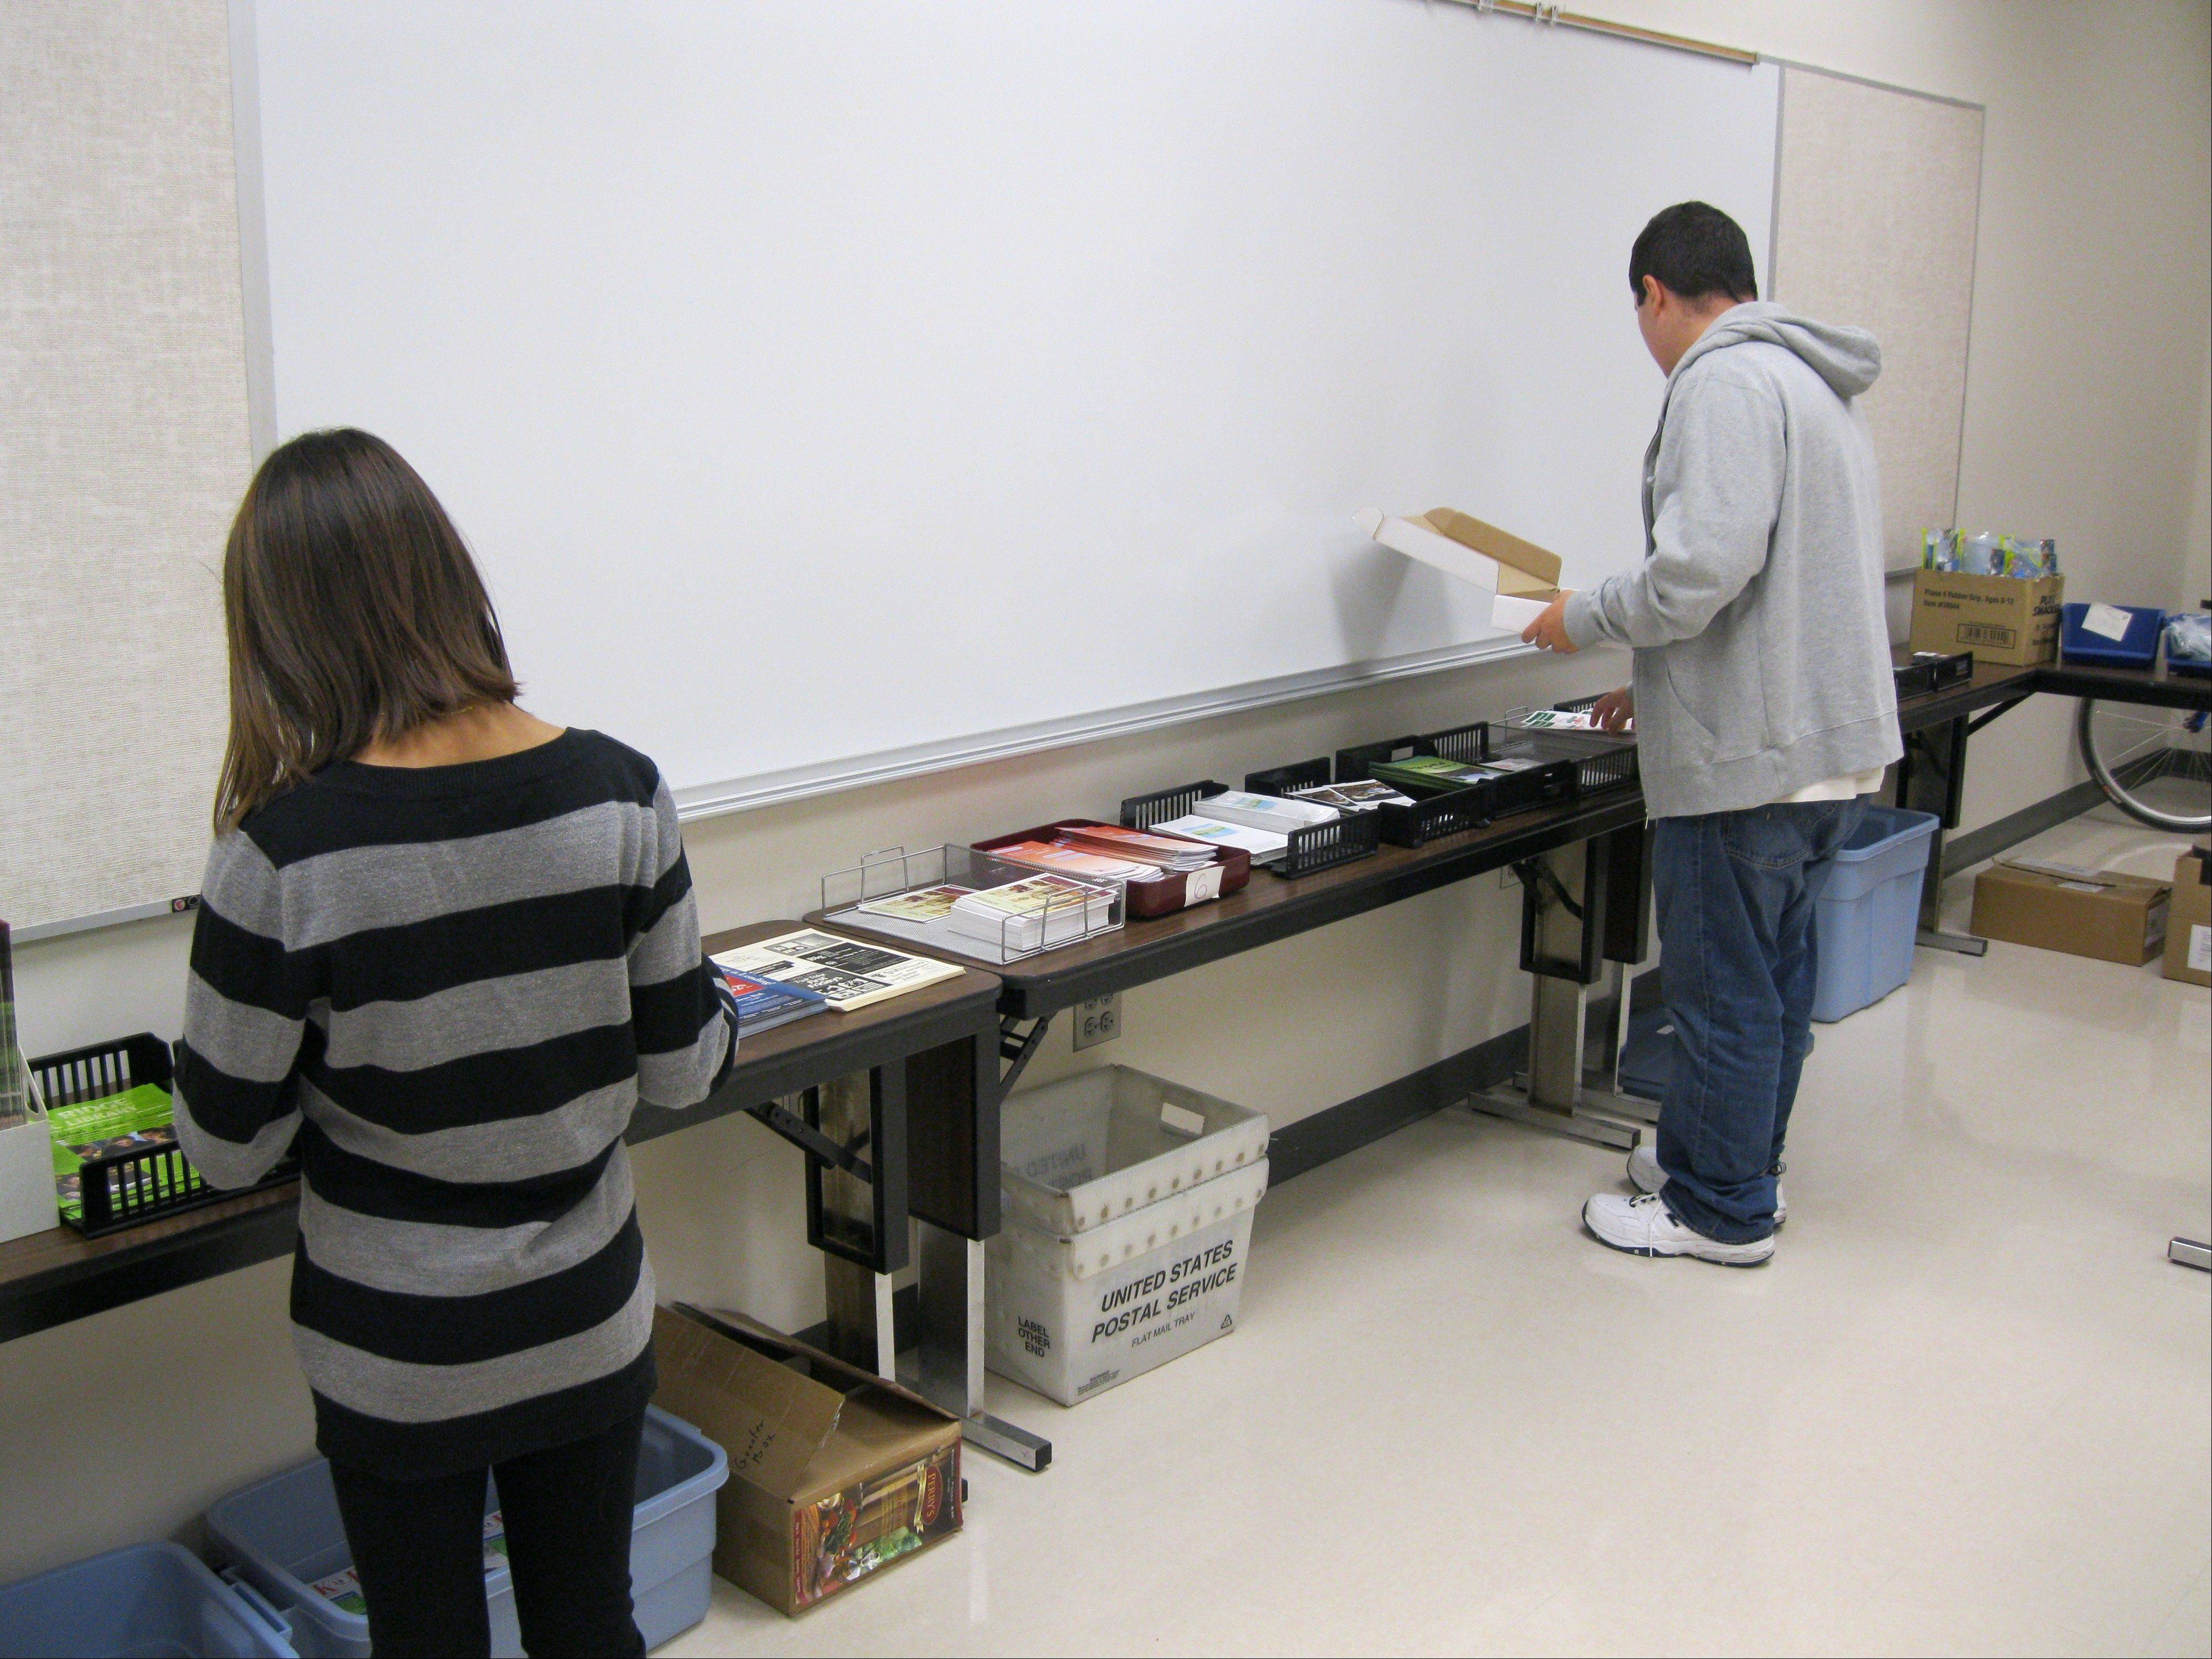 District 207's Transition Program is run from a recently remodeled and expanded facility at Maine East High School. Besides teaching living skills, the Transition Program staff coaches students in preparation to perform a variety of real-world work tasks.